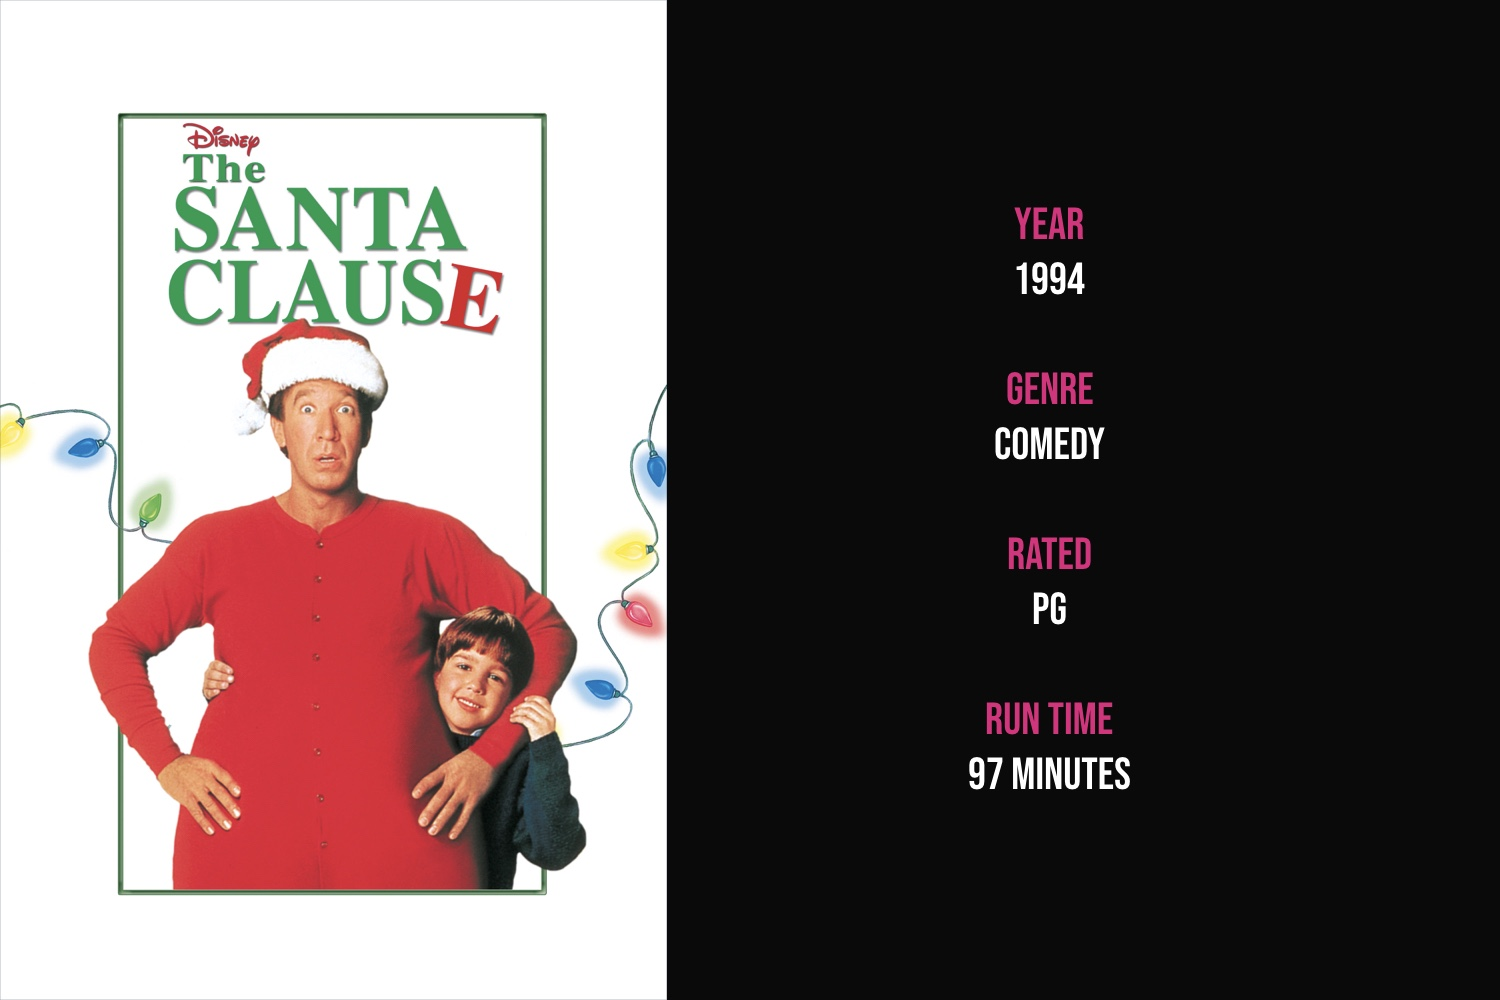 The Santa Clause - A divorced father begins transforming into the new Santa and the strained relationship he has with his son begins to improve.iTunes | Amazon